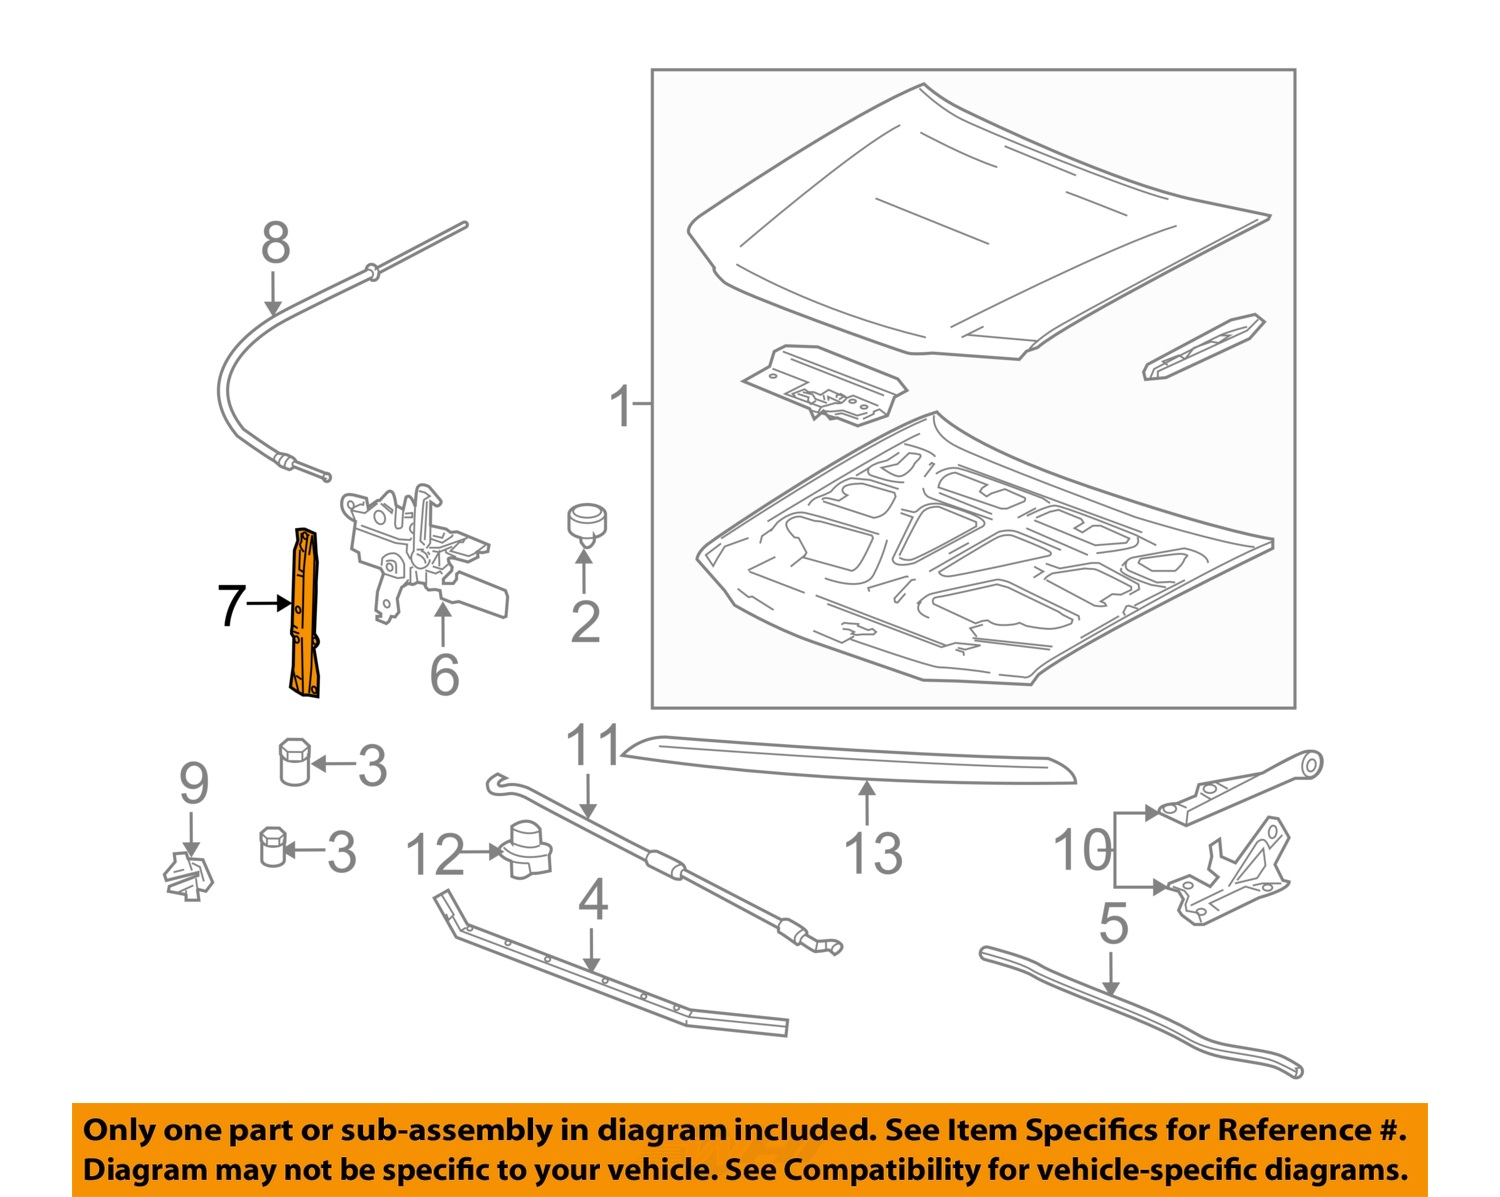 2006 hummer h3 parts diagrams 3 way switch wiring diagram multiple lights power at light h3t hood latch support 2010 new oem gm 20827029